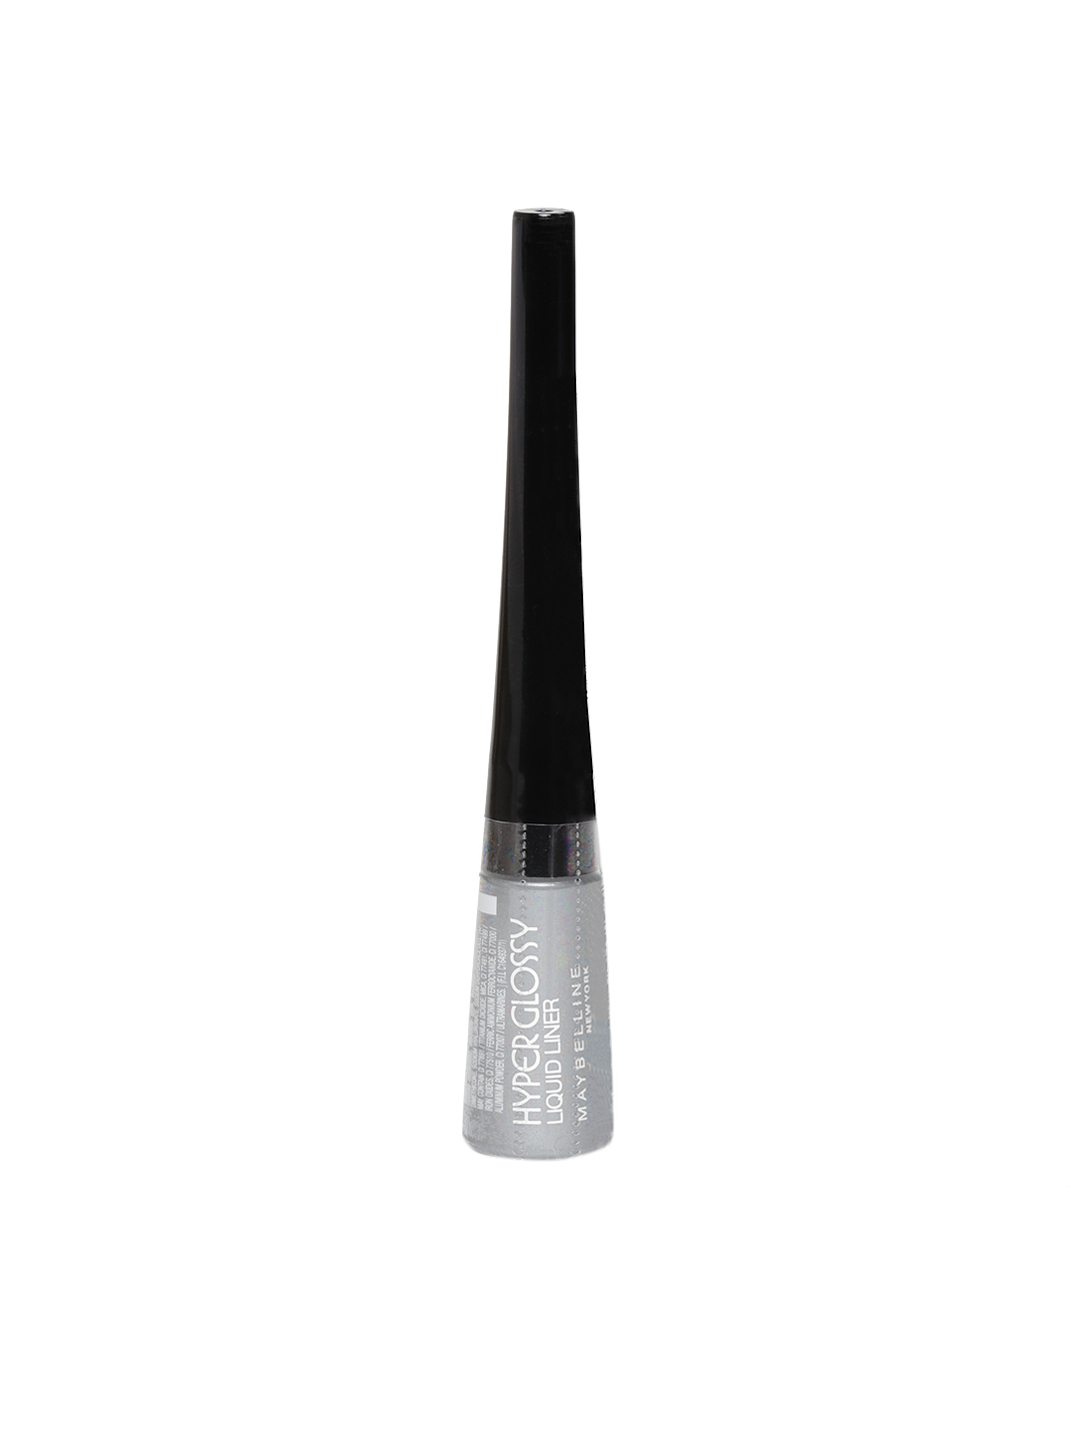 Maybelline-Hyper-Glossy-Silver-Toned-Liquid-Liner_3f3a50fc5118f4106299554dcf3f3b74_images